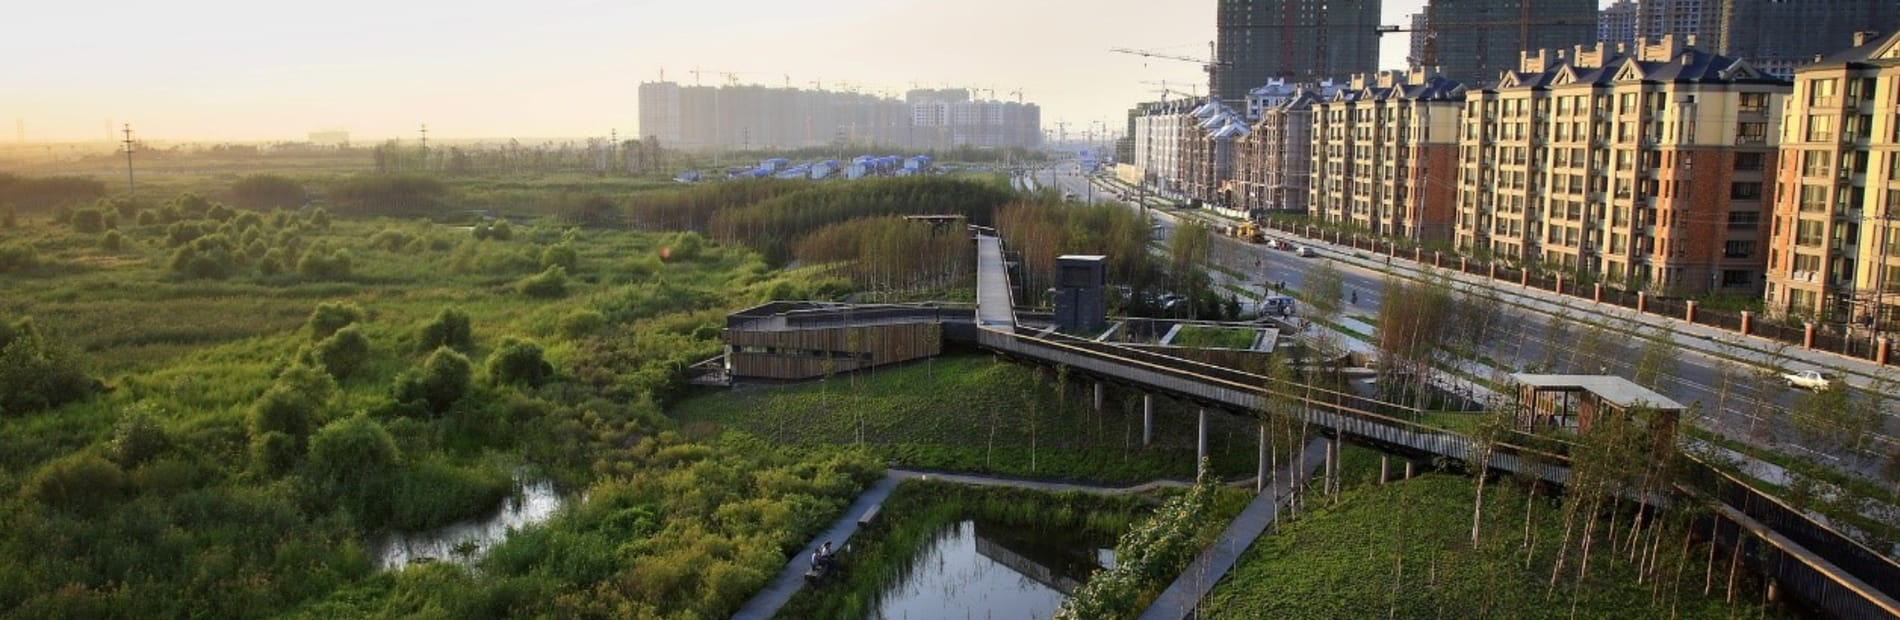 A large eco-system alongside a urban housing development